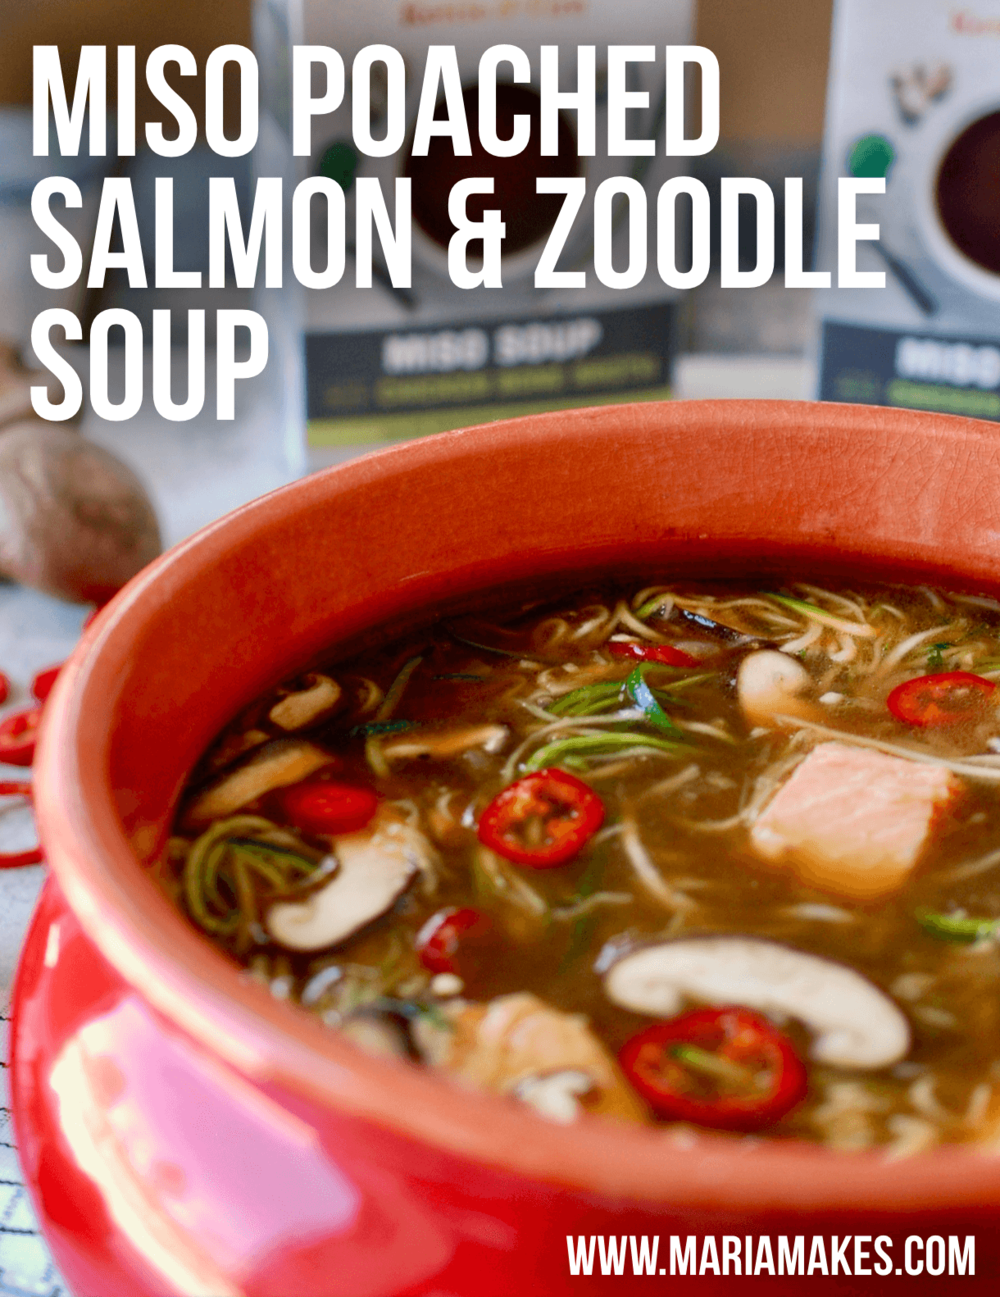 Miso Poached Salmon & Zoodle Soup – Maria Makes: Flavor packed, warm-you-to-the-bone soup recipe that is the perfect combination of umami and heat. Using Kettle & Fire Miso Soup as the base, this recipe comes together in 20 min or less!